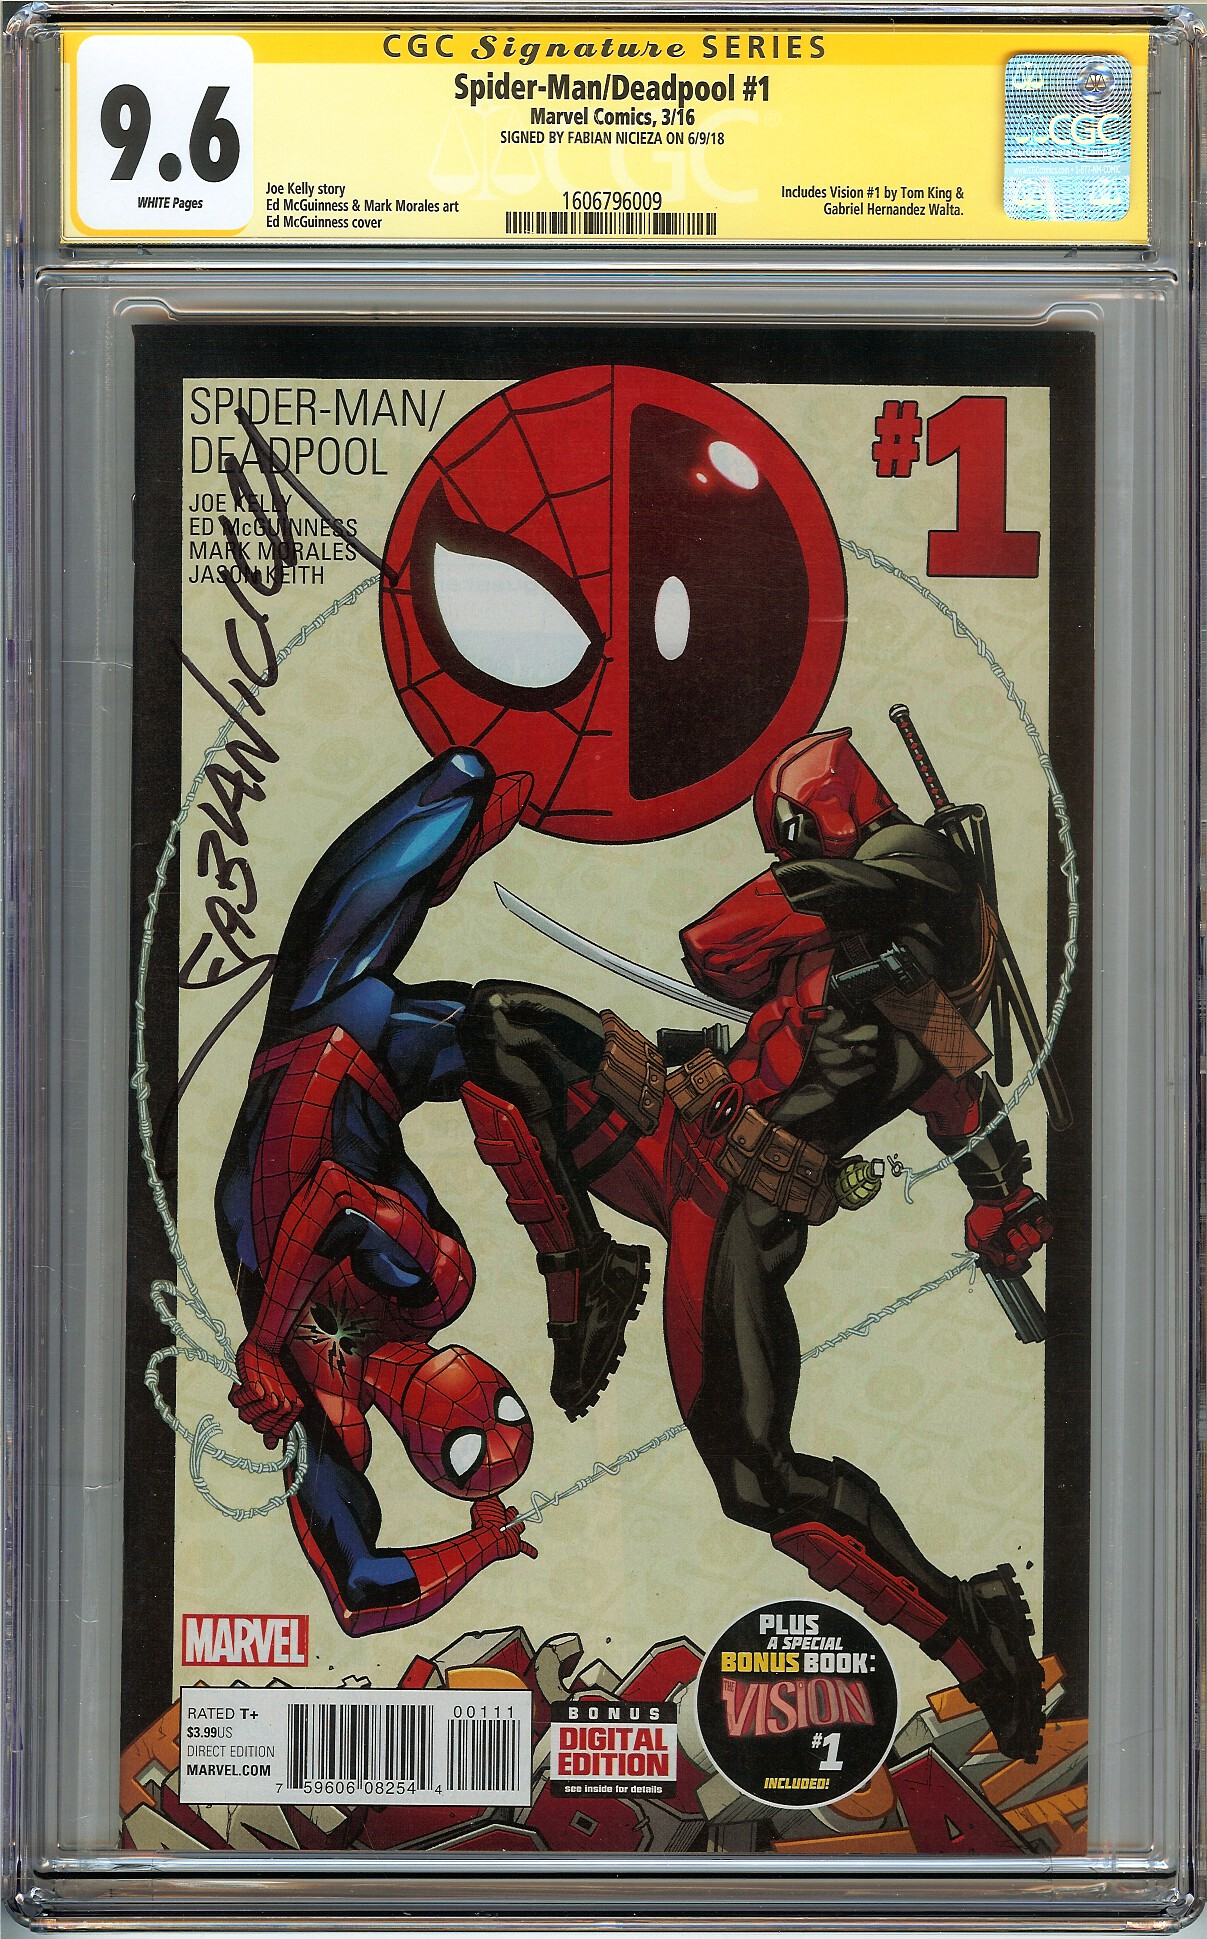 Details about Spider-Man Deadpool #1 CGC 9.6 NM+ SIGNED FABIAN NICIEZA Not  9.8 ED MCGUINNESS